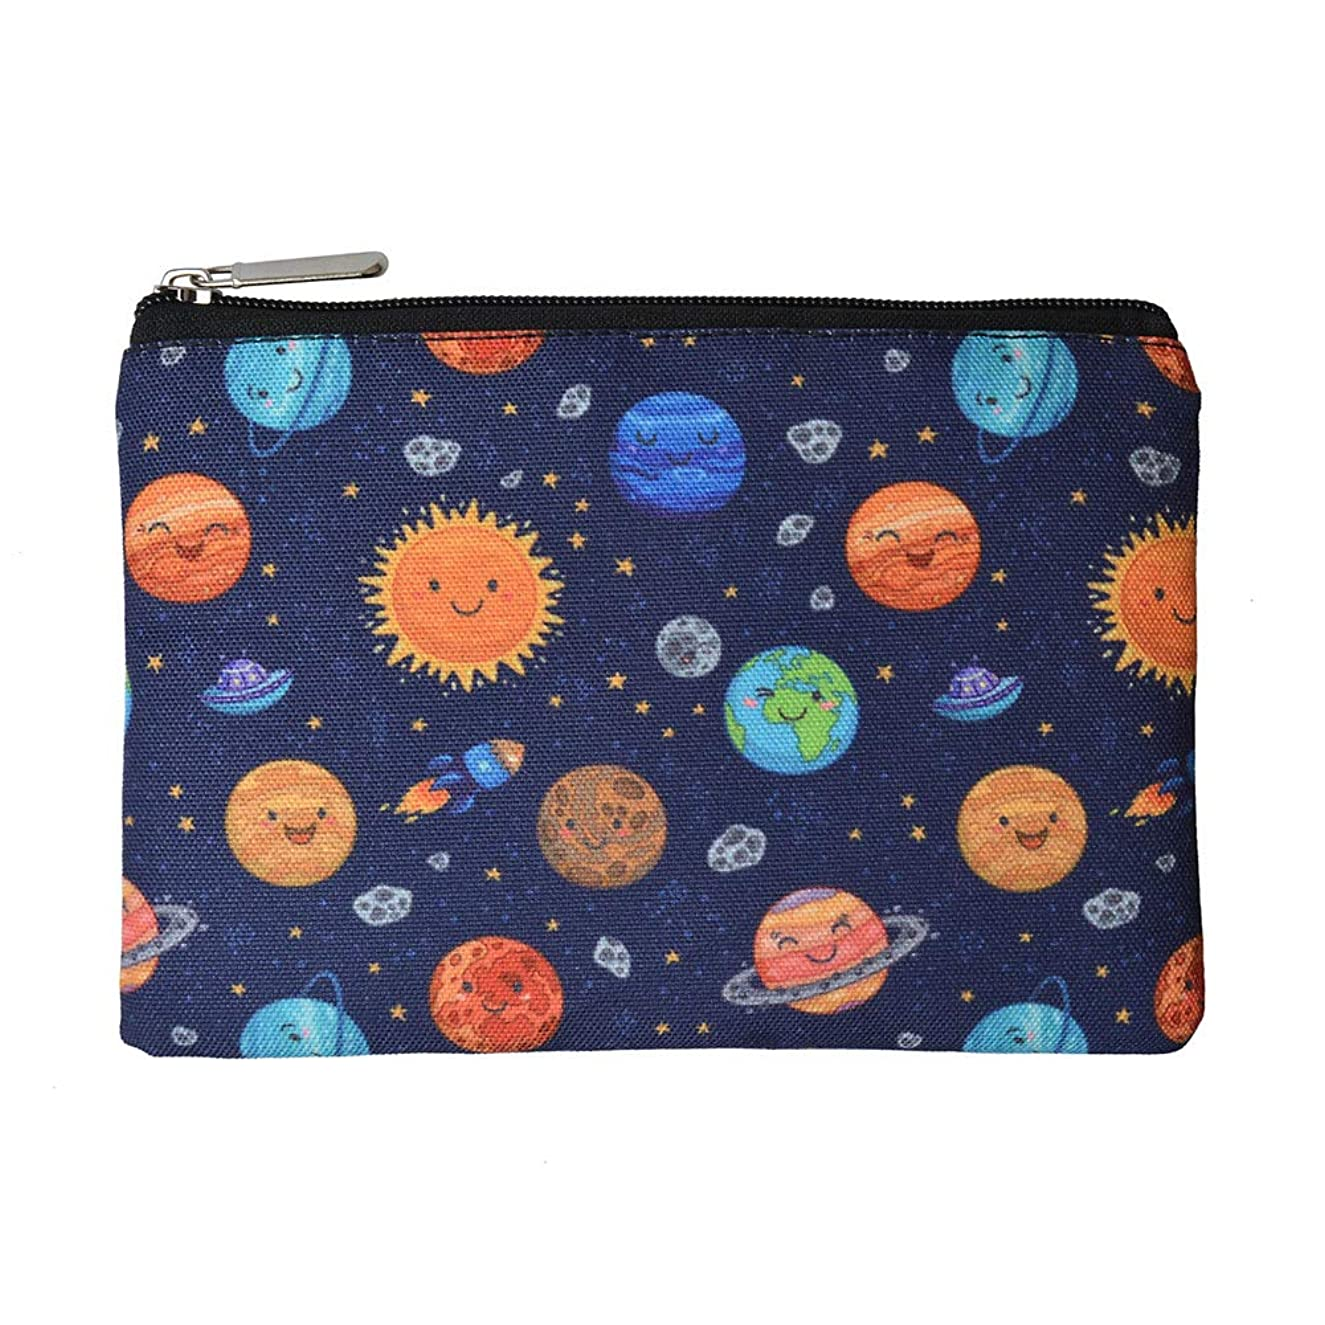 Rantanto Canvas Pencil Holder Case Pen Stationary Pouch Cosmetic Makeup Bag (CPH010 Space Planets)